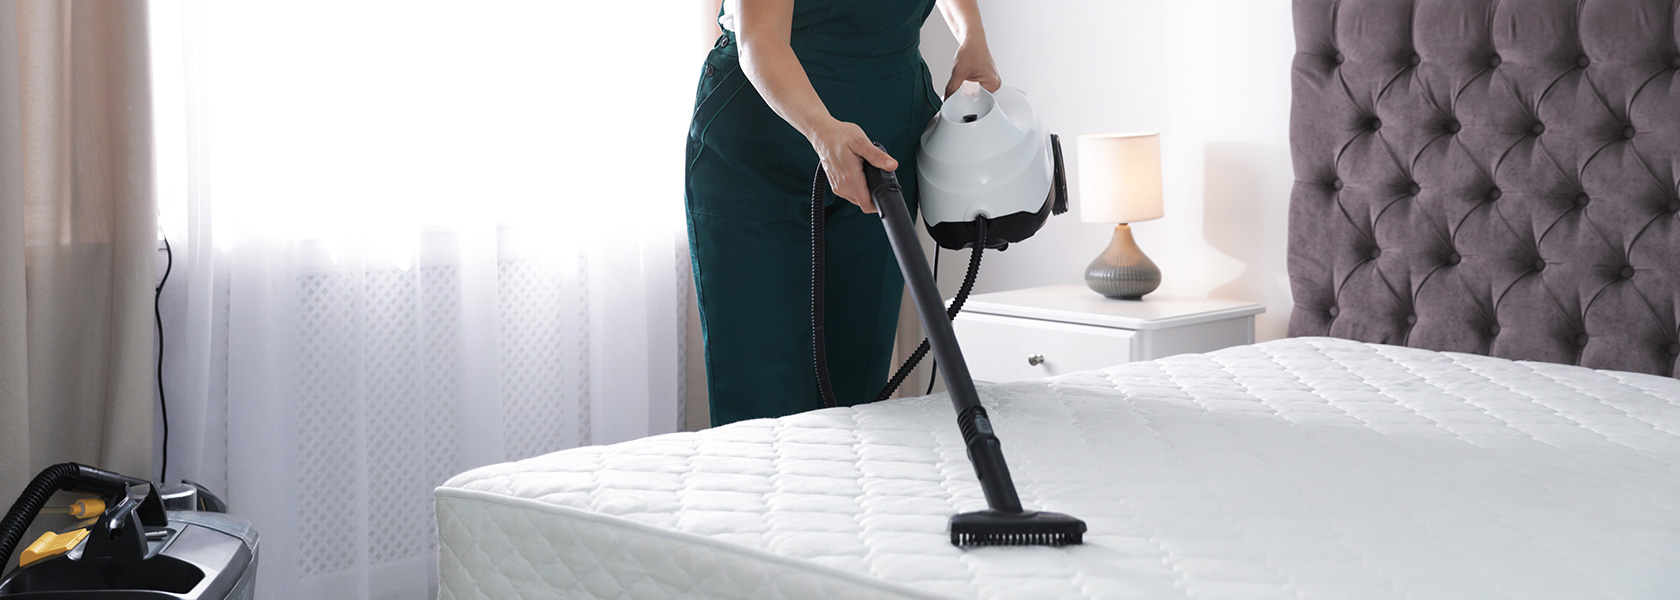 Mattress Steam Cleaning Services in Abu Dhabi - Maids On Demand